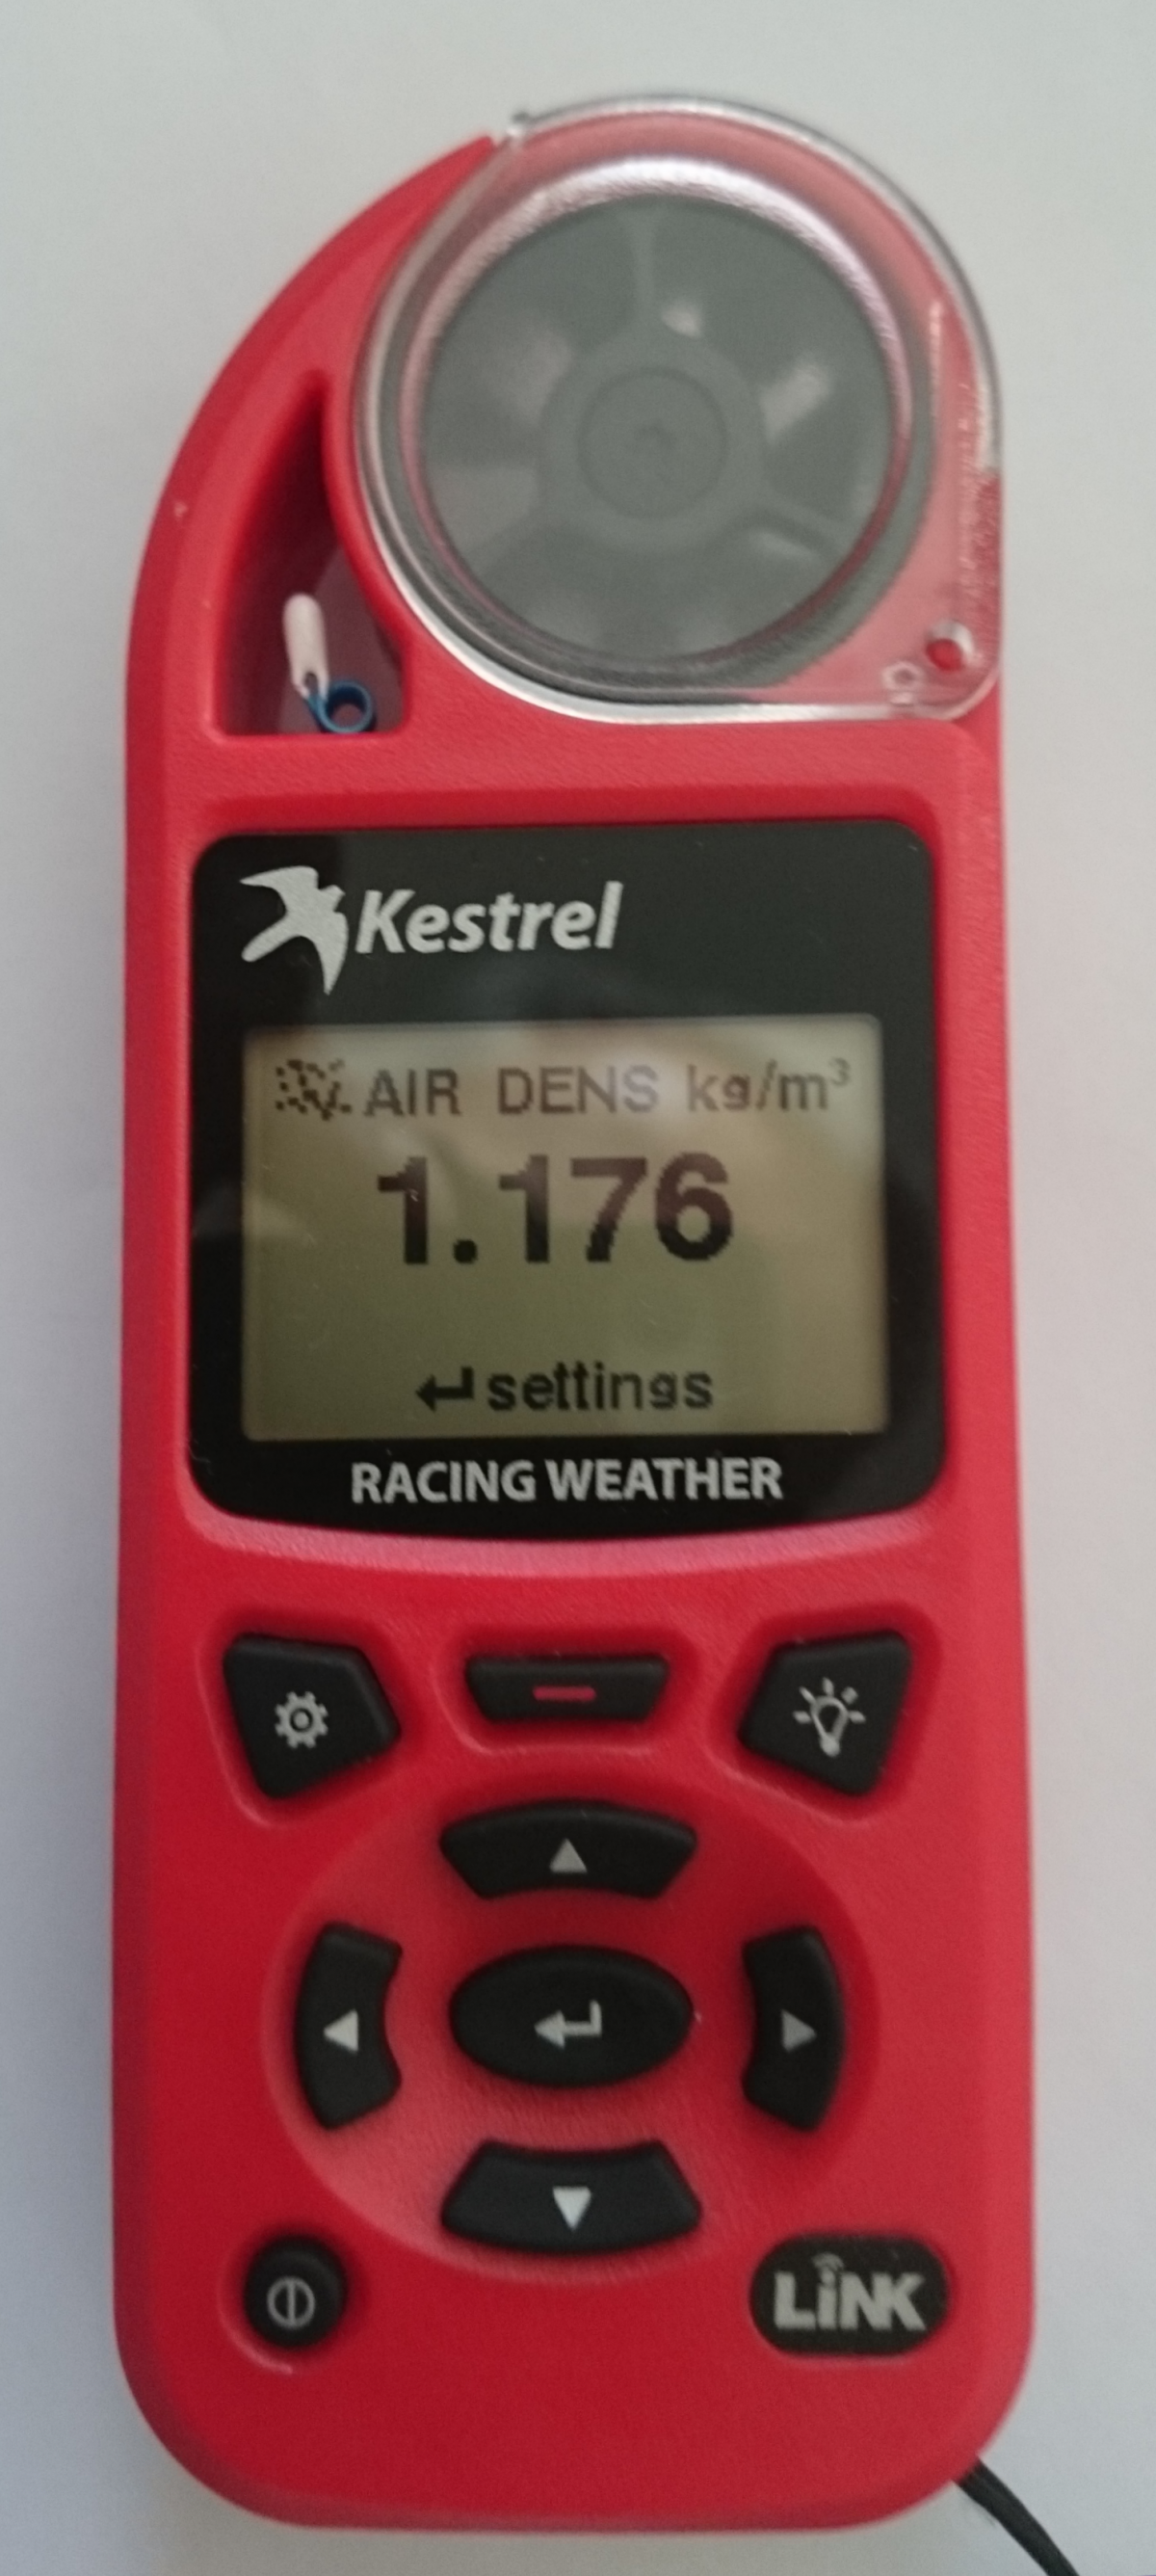 Weather station for obtaining local data